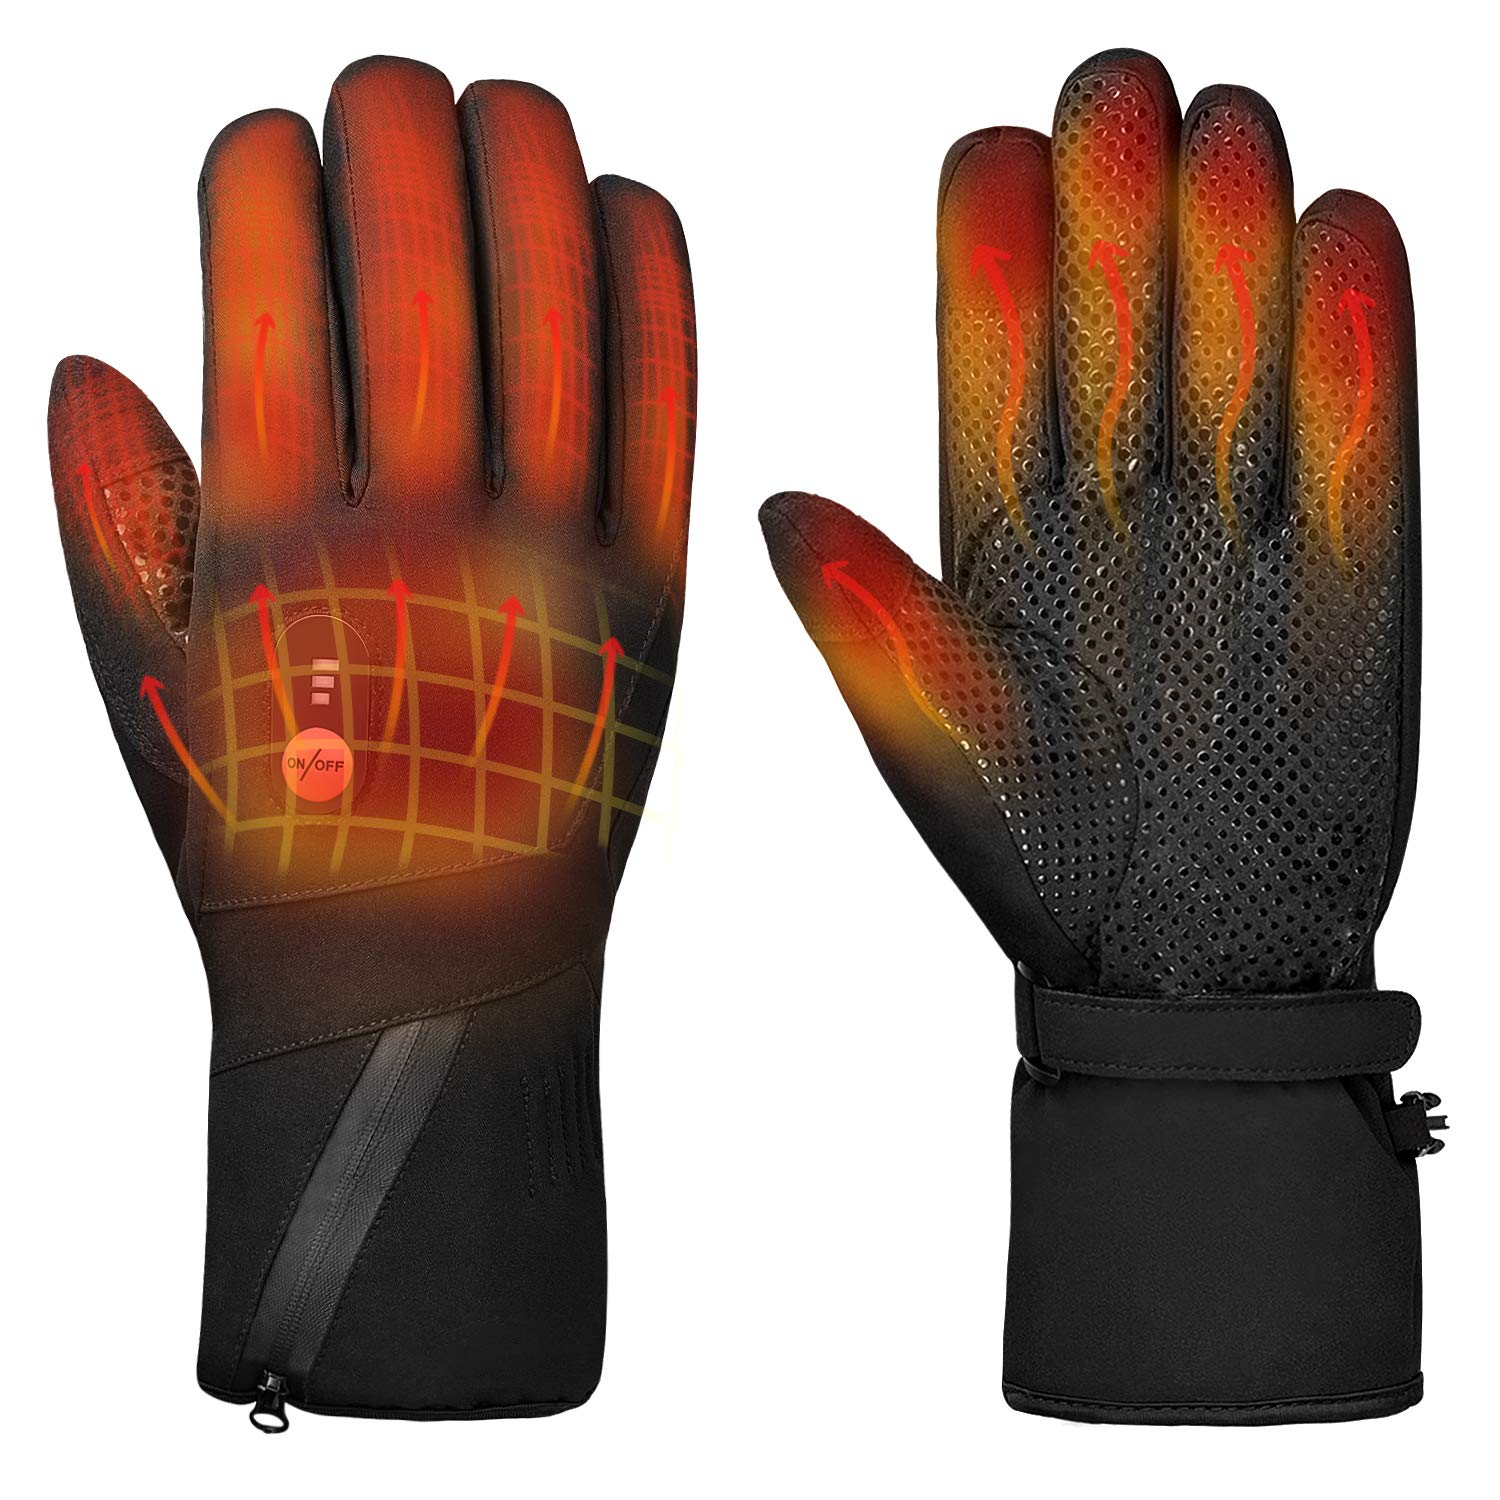 Heated Gloves Electric Hand Warmer Rechargeable Powered Li-ion Battery up to 6 Hours, Snow Winter Warm Outdoor Cycling, Motorcycle, Hiking, Snowboarding,Men Women by Sun Will